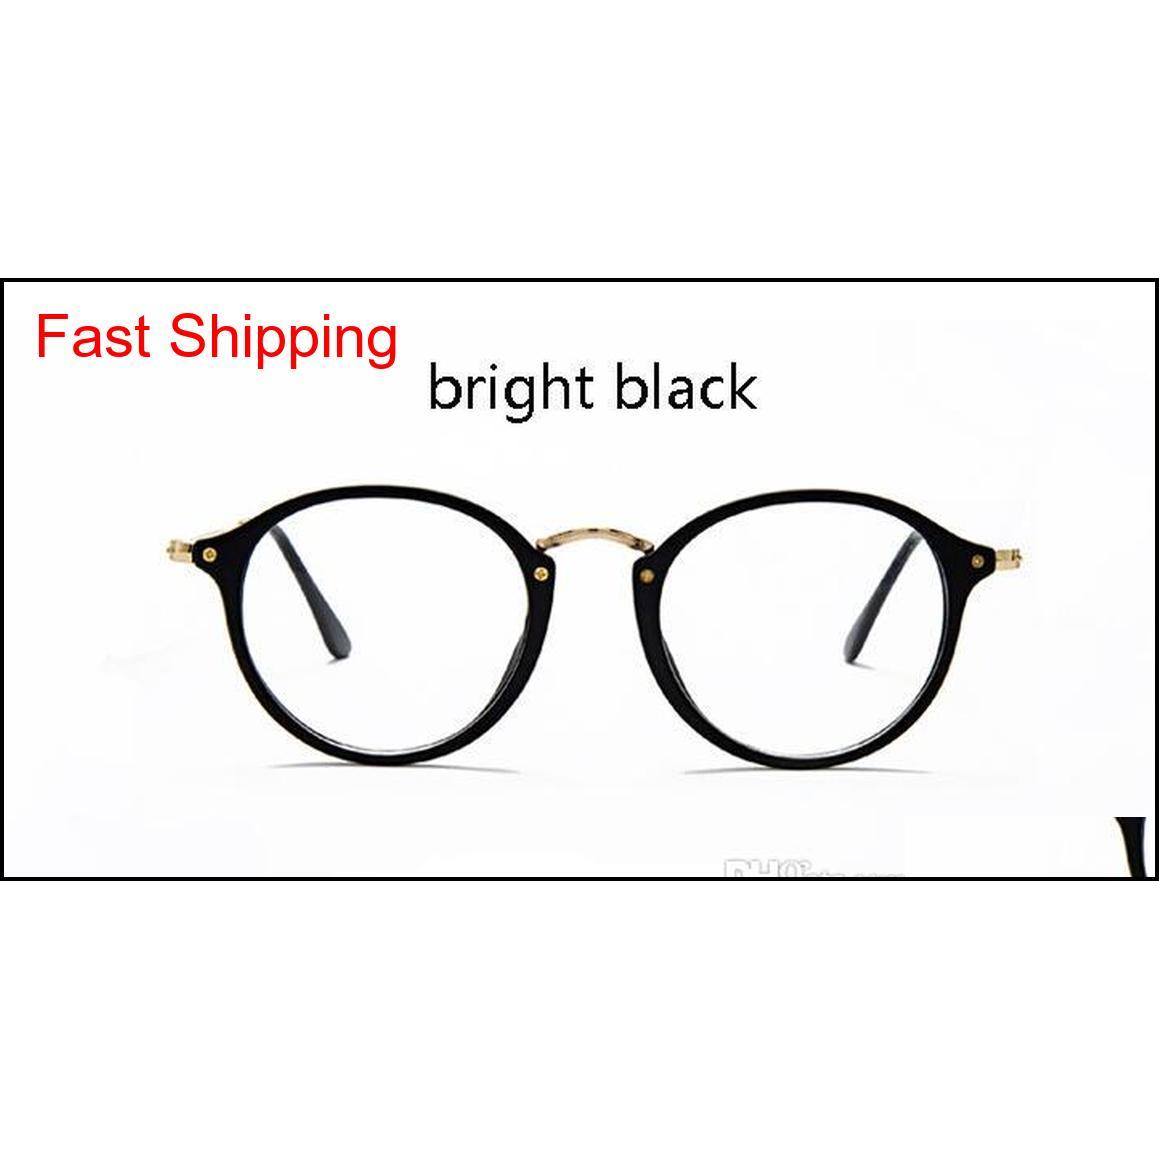 temples for glasses round glasses eyeglasses women transparent frame 2017 retro speactacles optical frames clear lens glasses